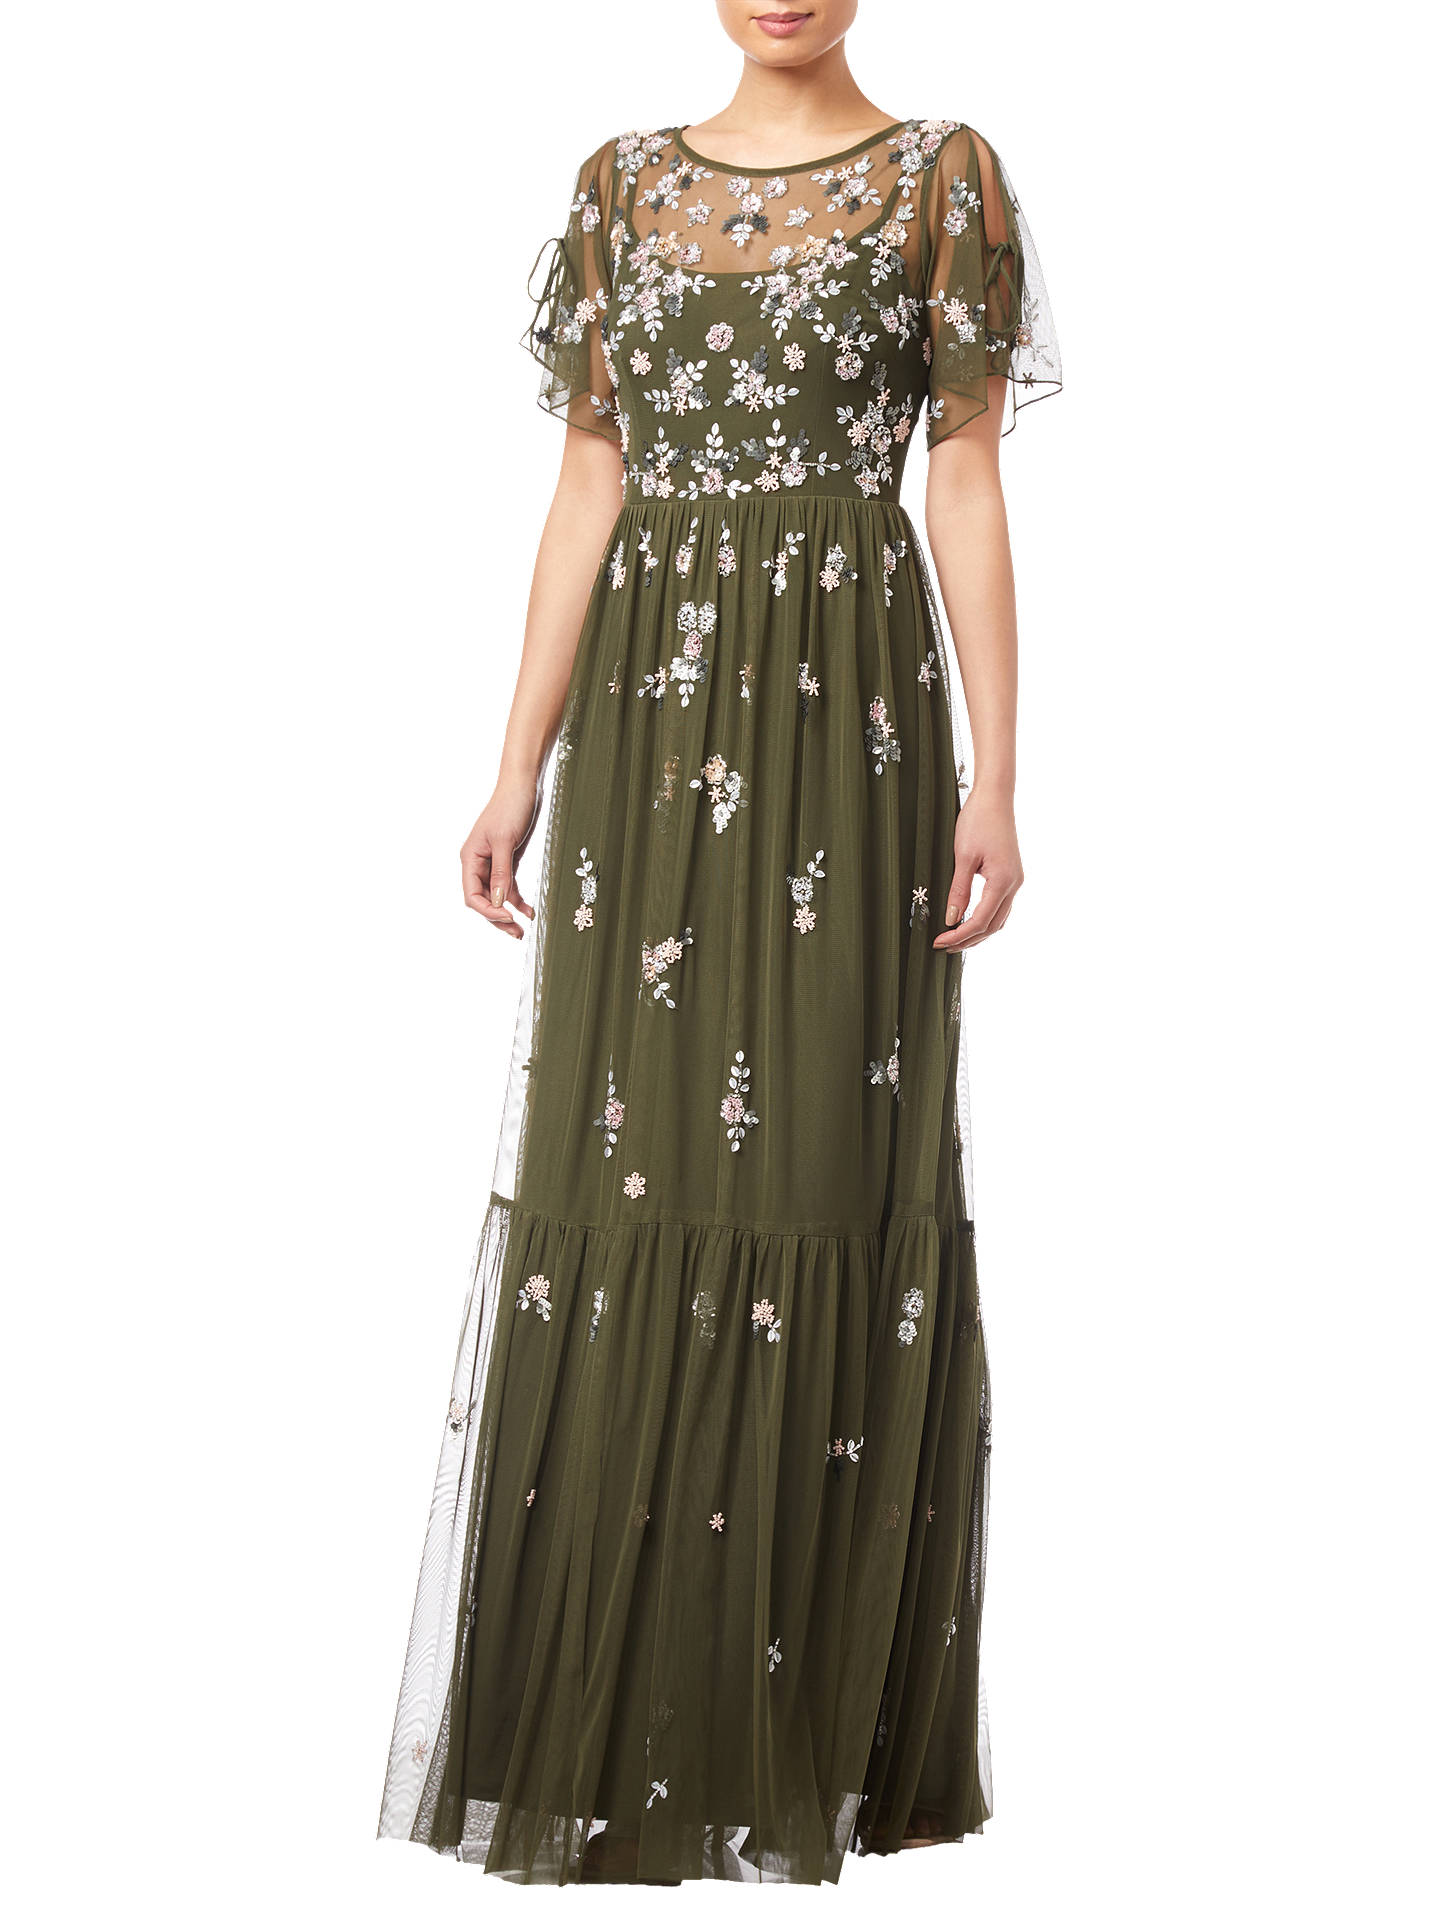 Adrianna Papell Beaded Mesh Dress, Olive at John Lewis & Partners